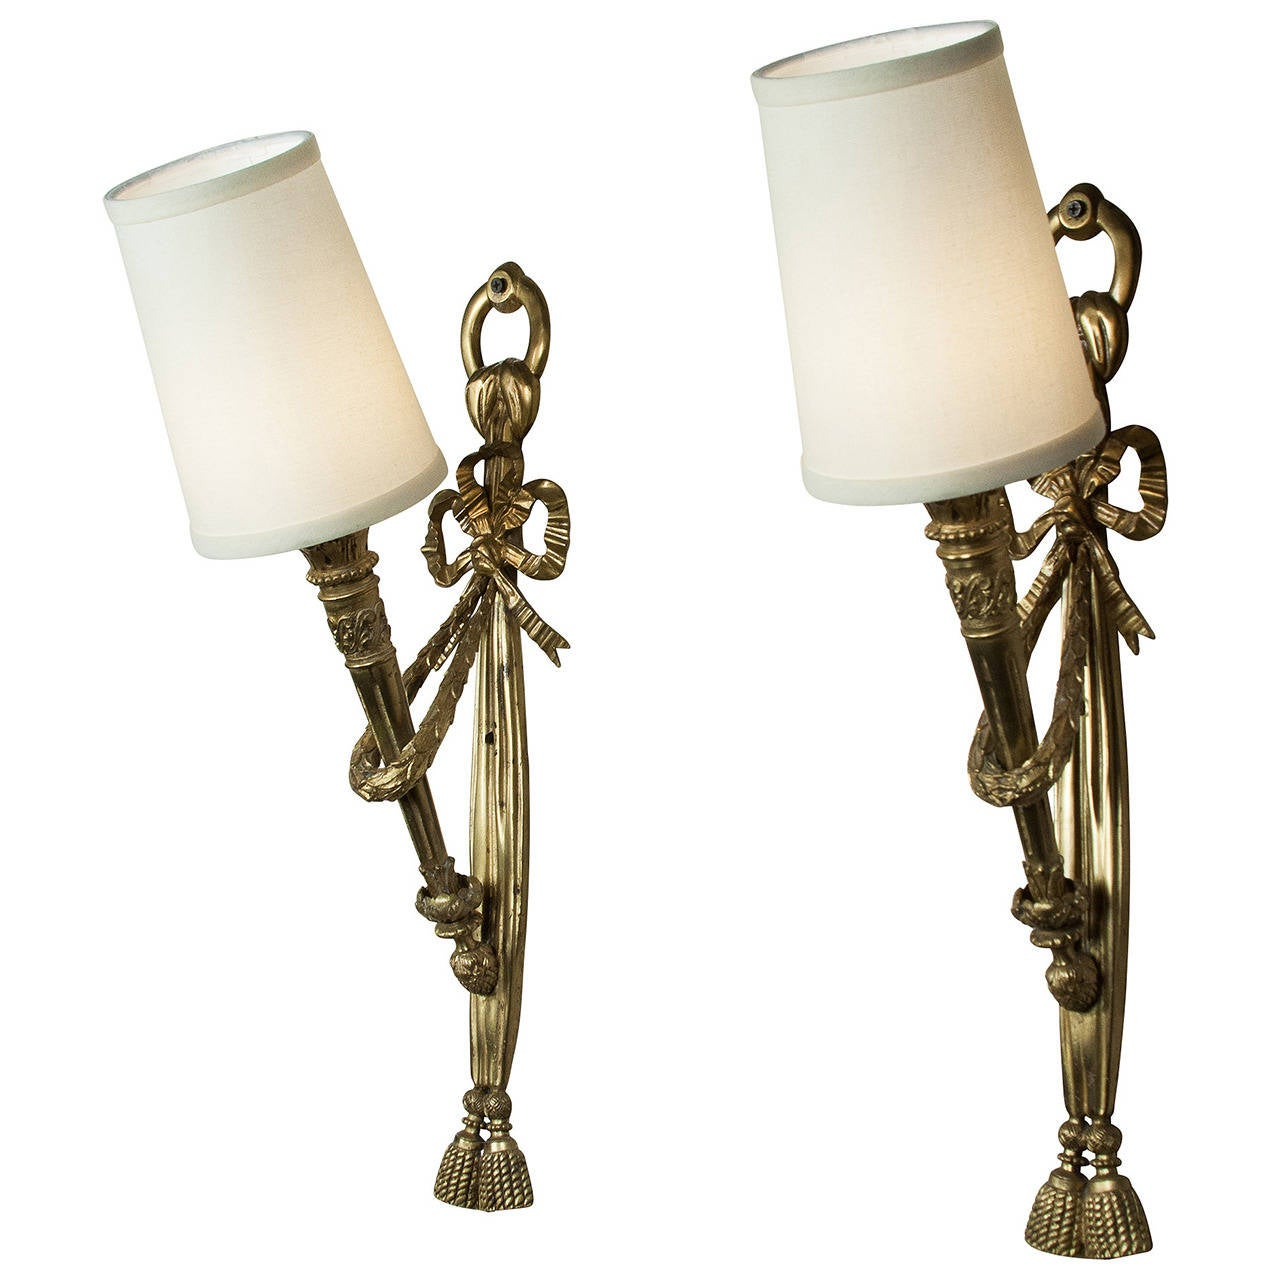 Large Torch Wall Lights : Pair of Tall Torch Wall Sconces For Sale at 1stdibs